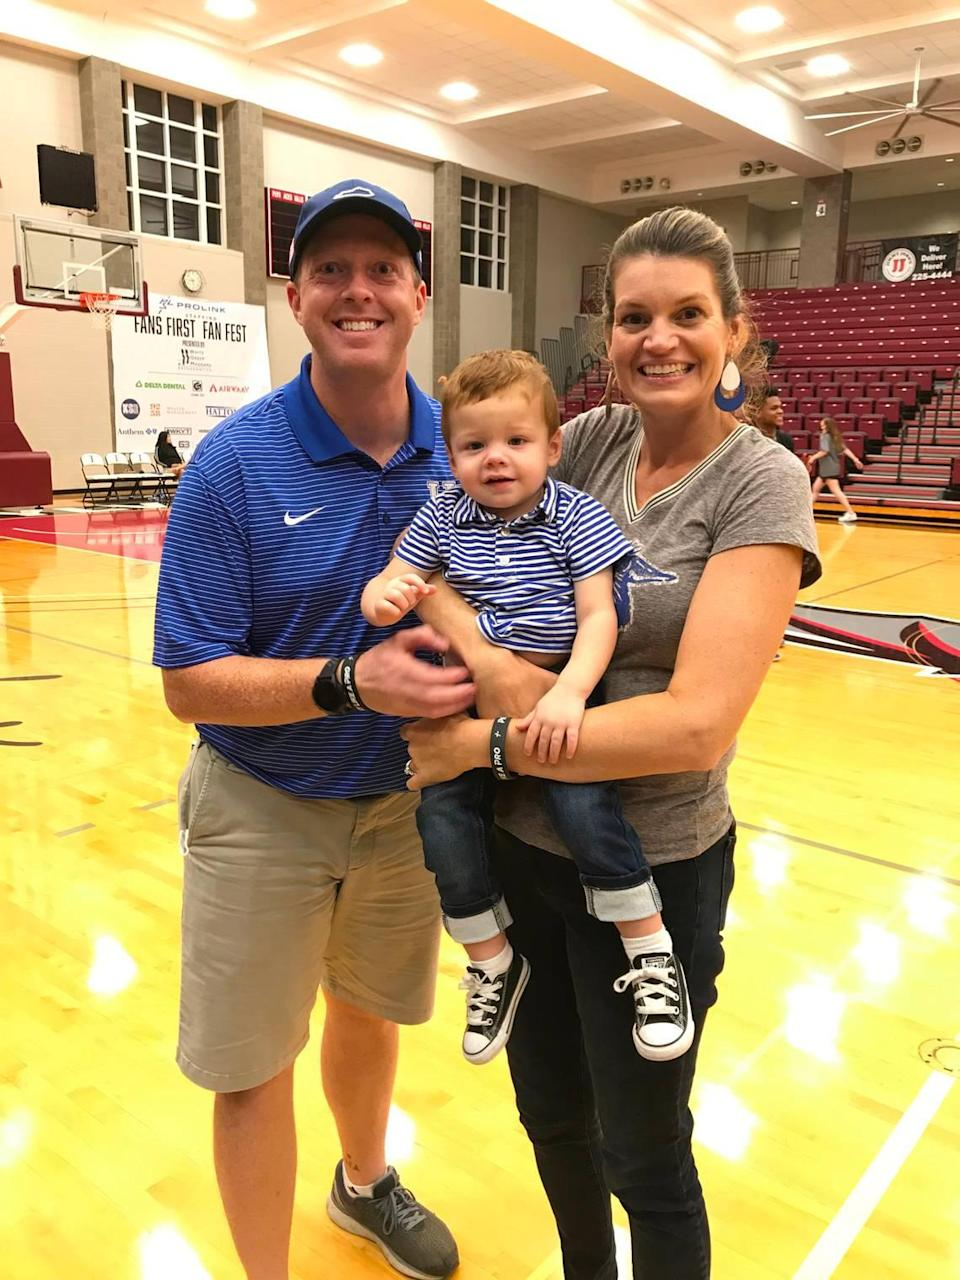 Ryan, Colin and Kelly Shrout attended the Kentucky basketball players' Fans First Fan Event at Transylvania University on Saturday.